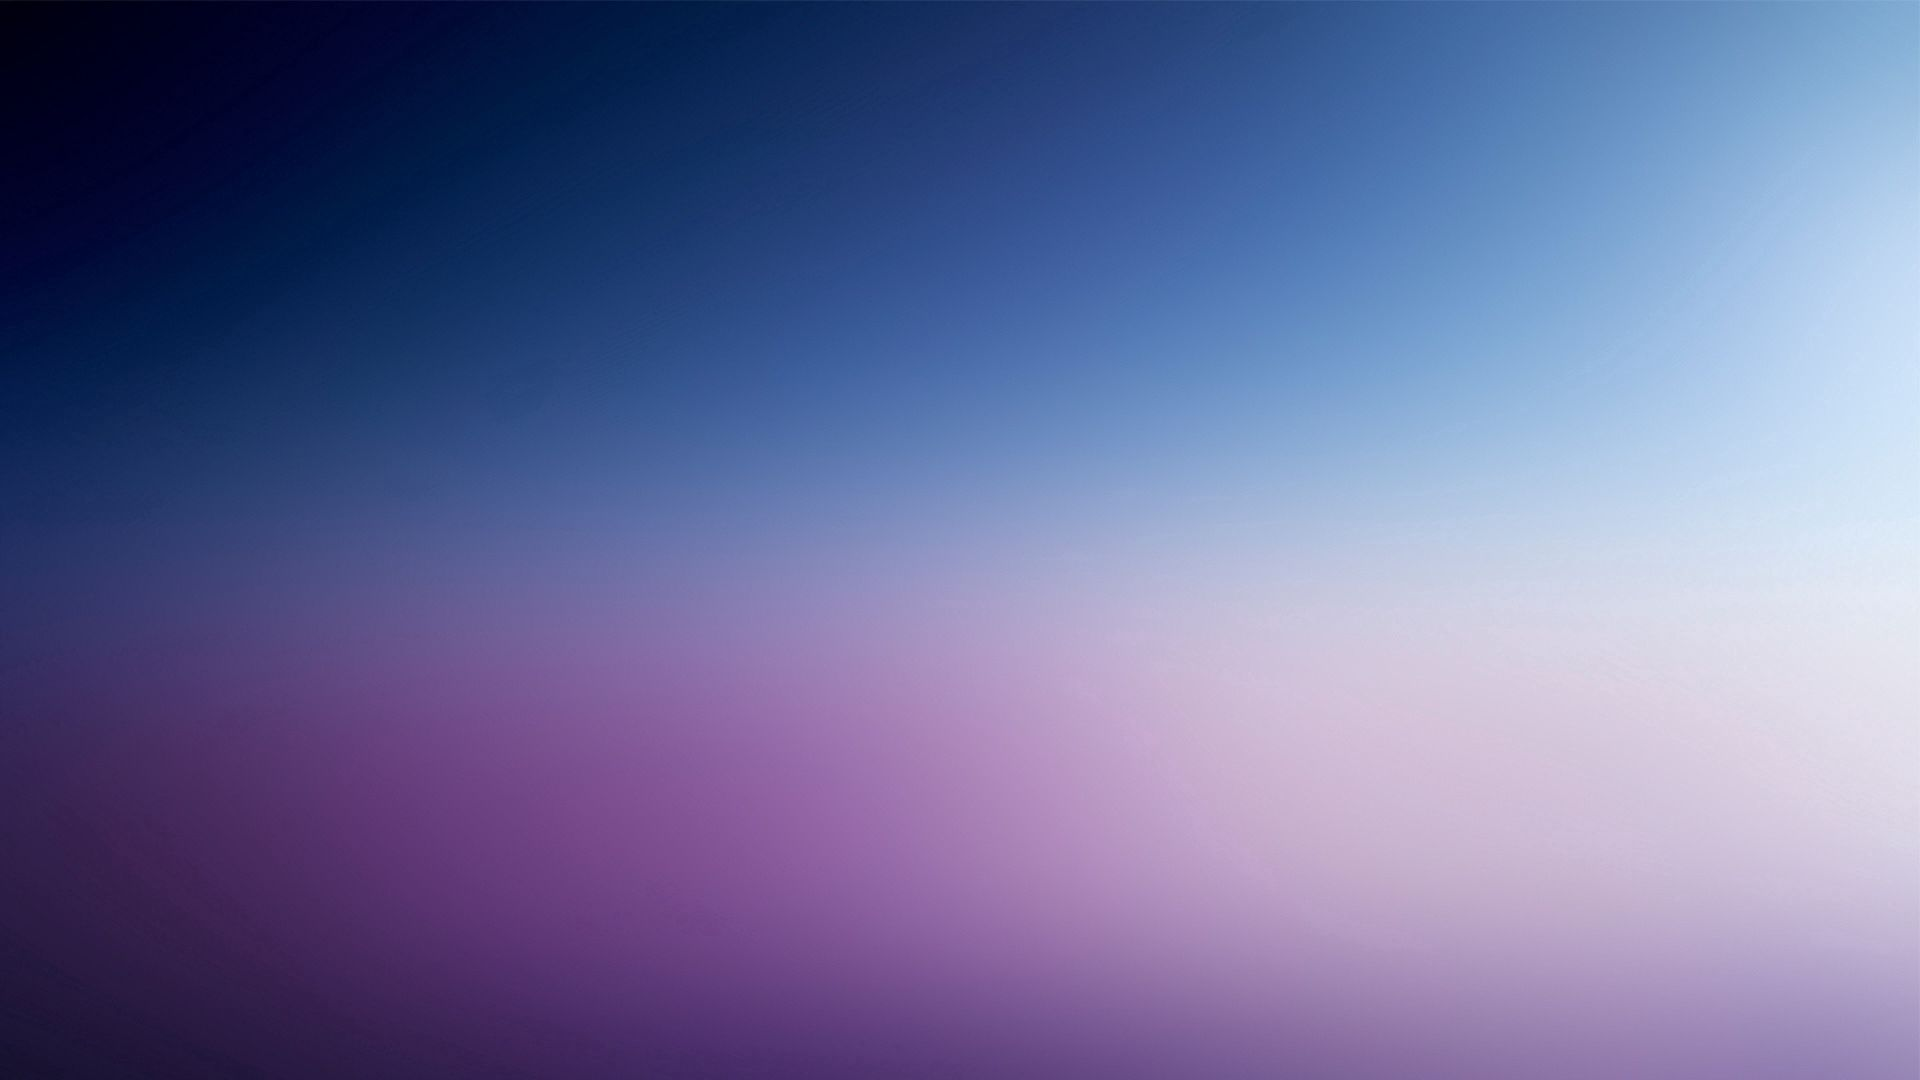 130855 download wallpaper Lines, Abstract, Light, Light Coloured, Stains, Spots screensavers and pictures for free